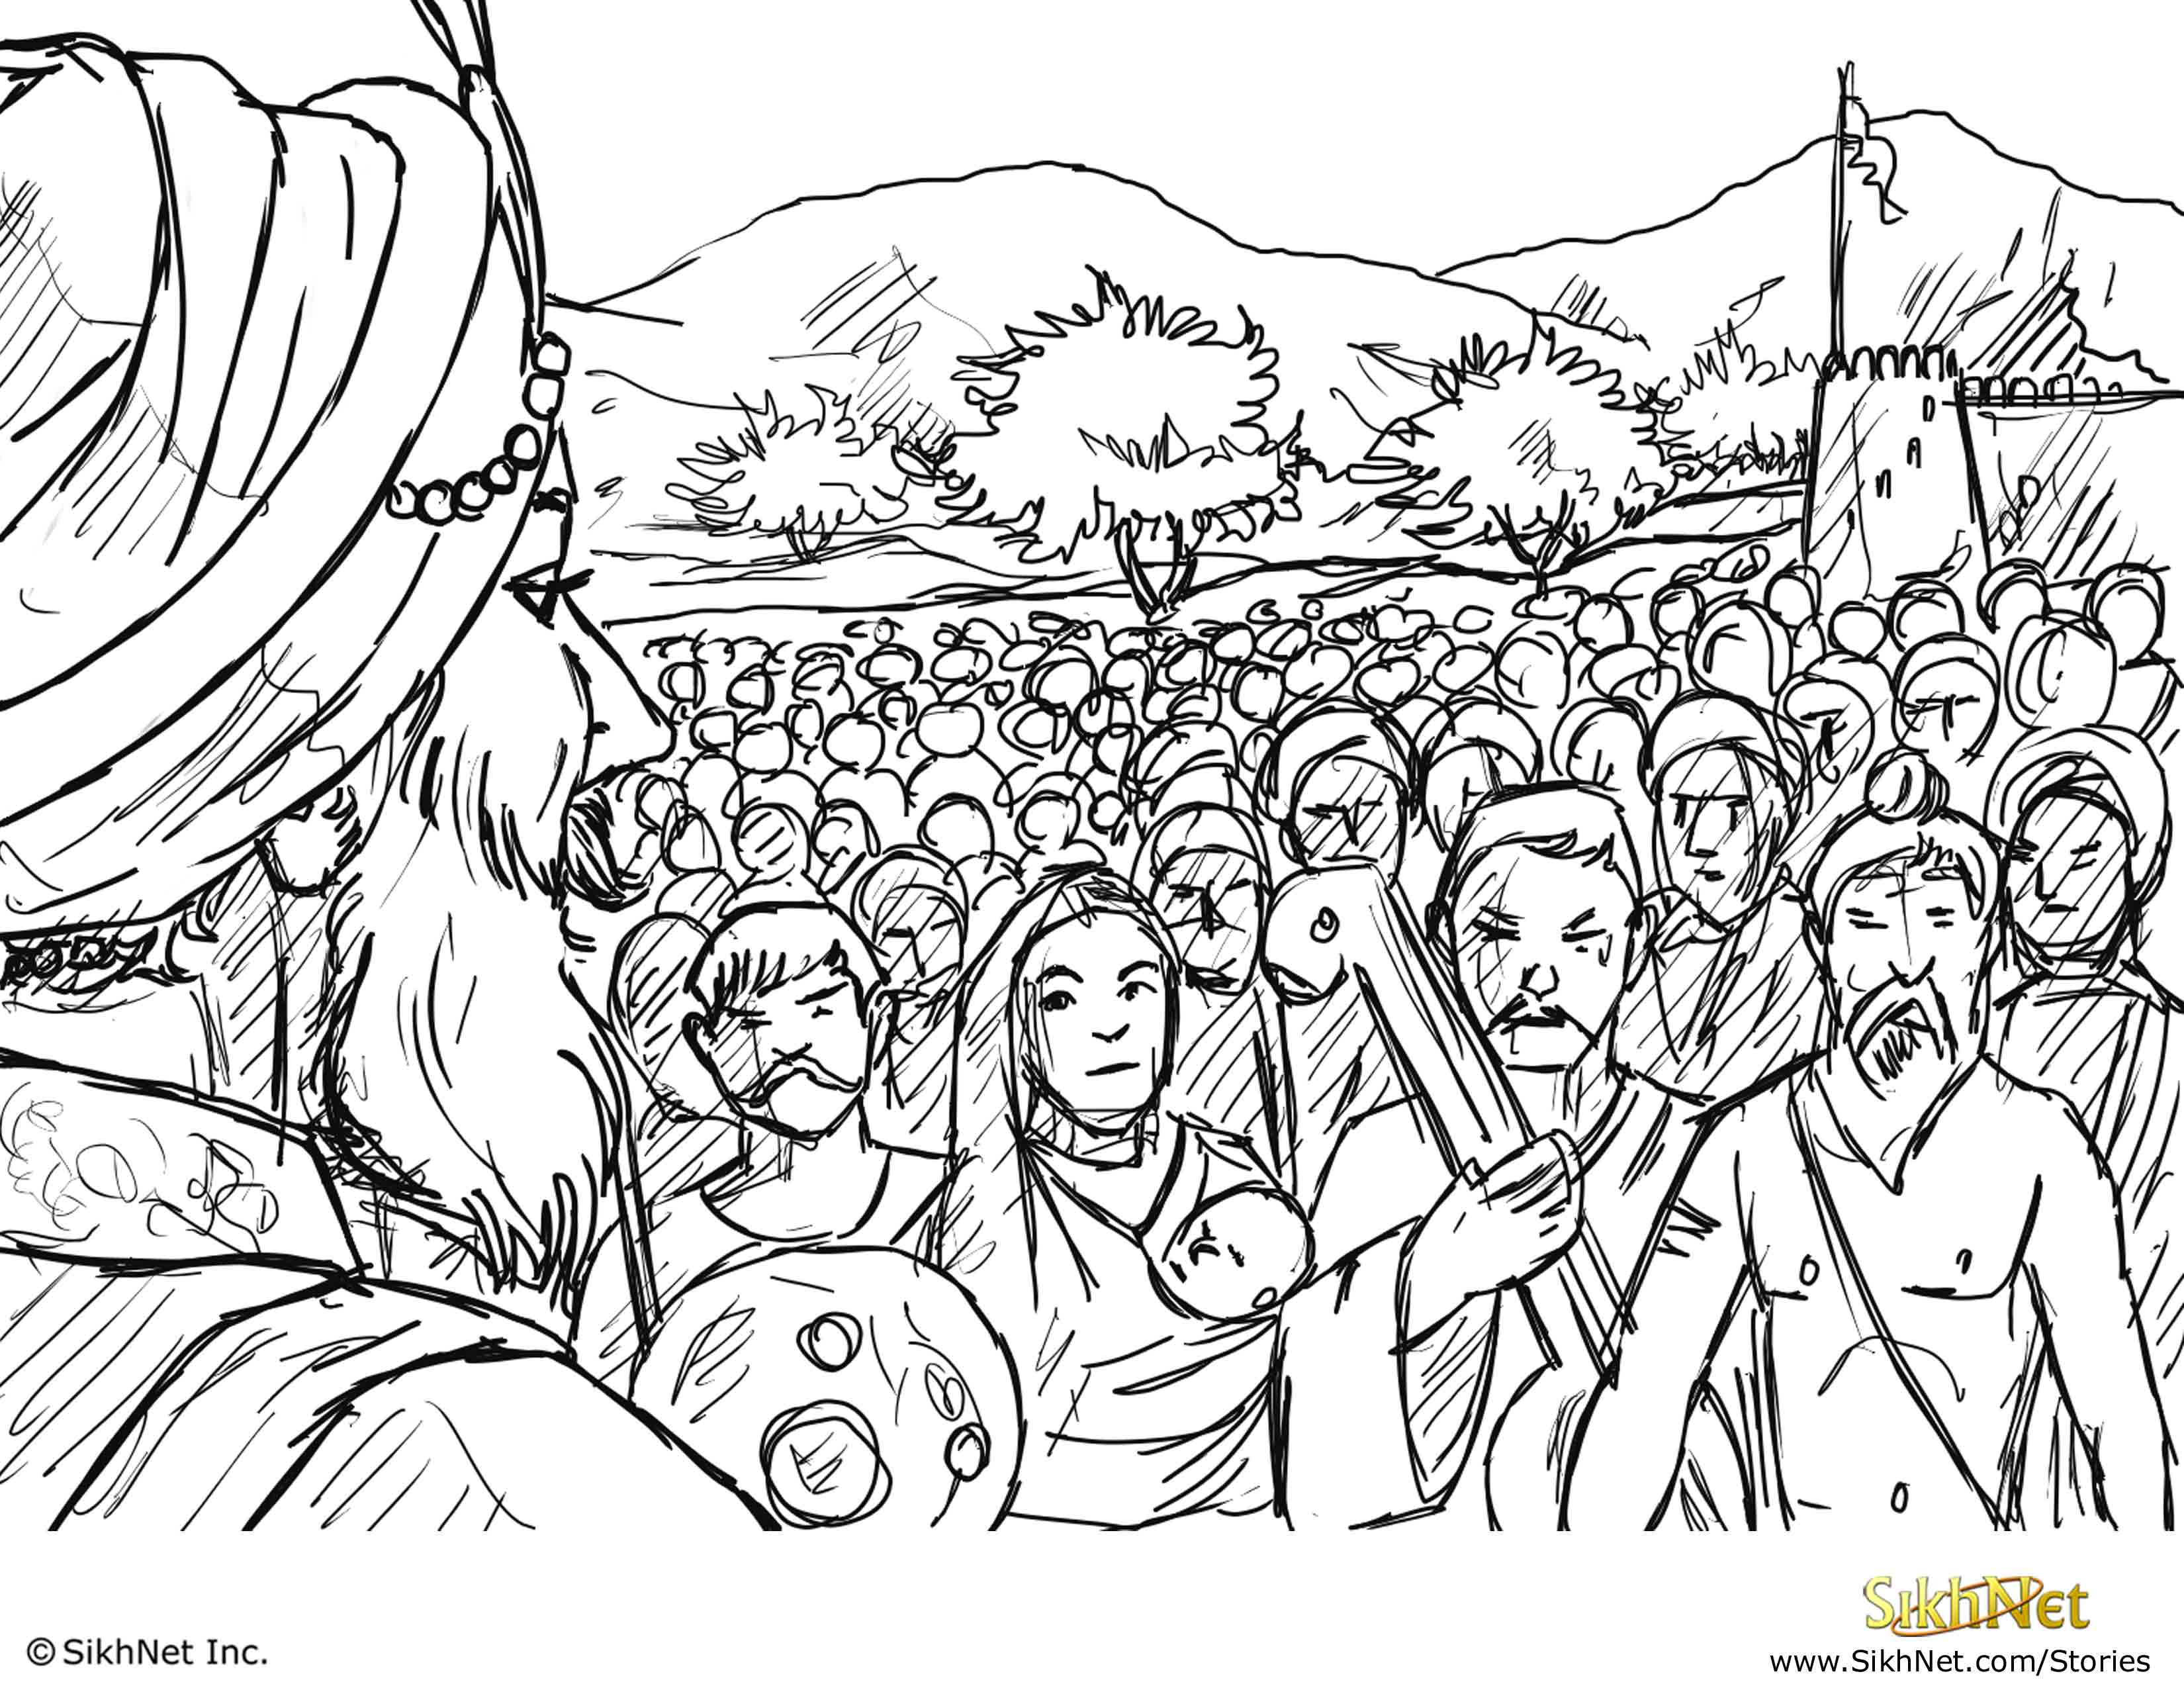 the birth of the khalsa On vaisakhi (march 30th) 1666, guru gobind singh created the khalsa order any person calling themselves a sikh, would have to follow the path set down for them in the khalsa.